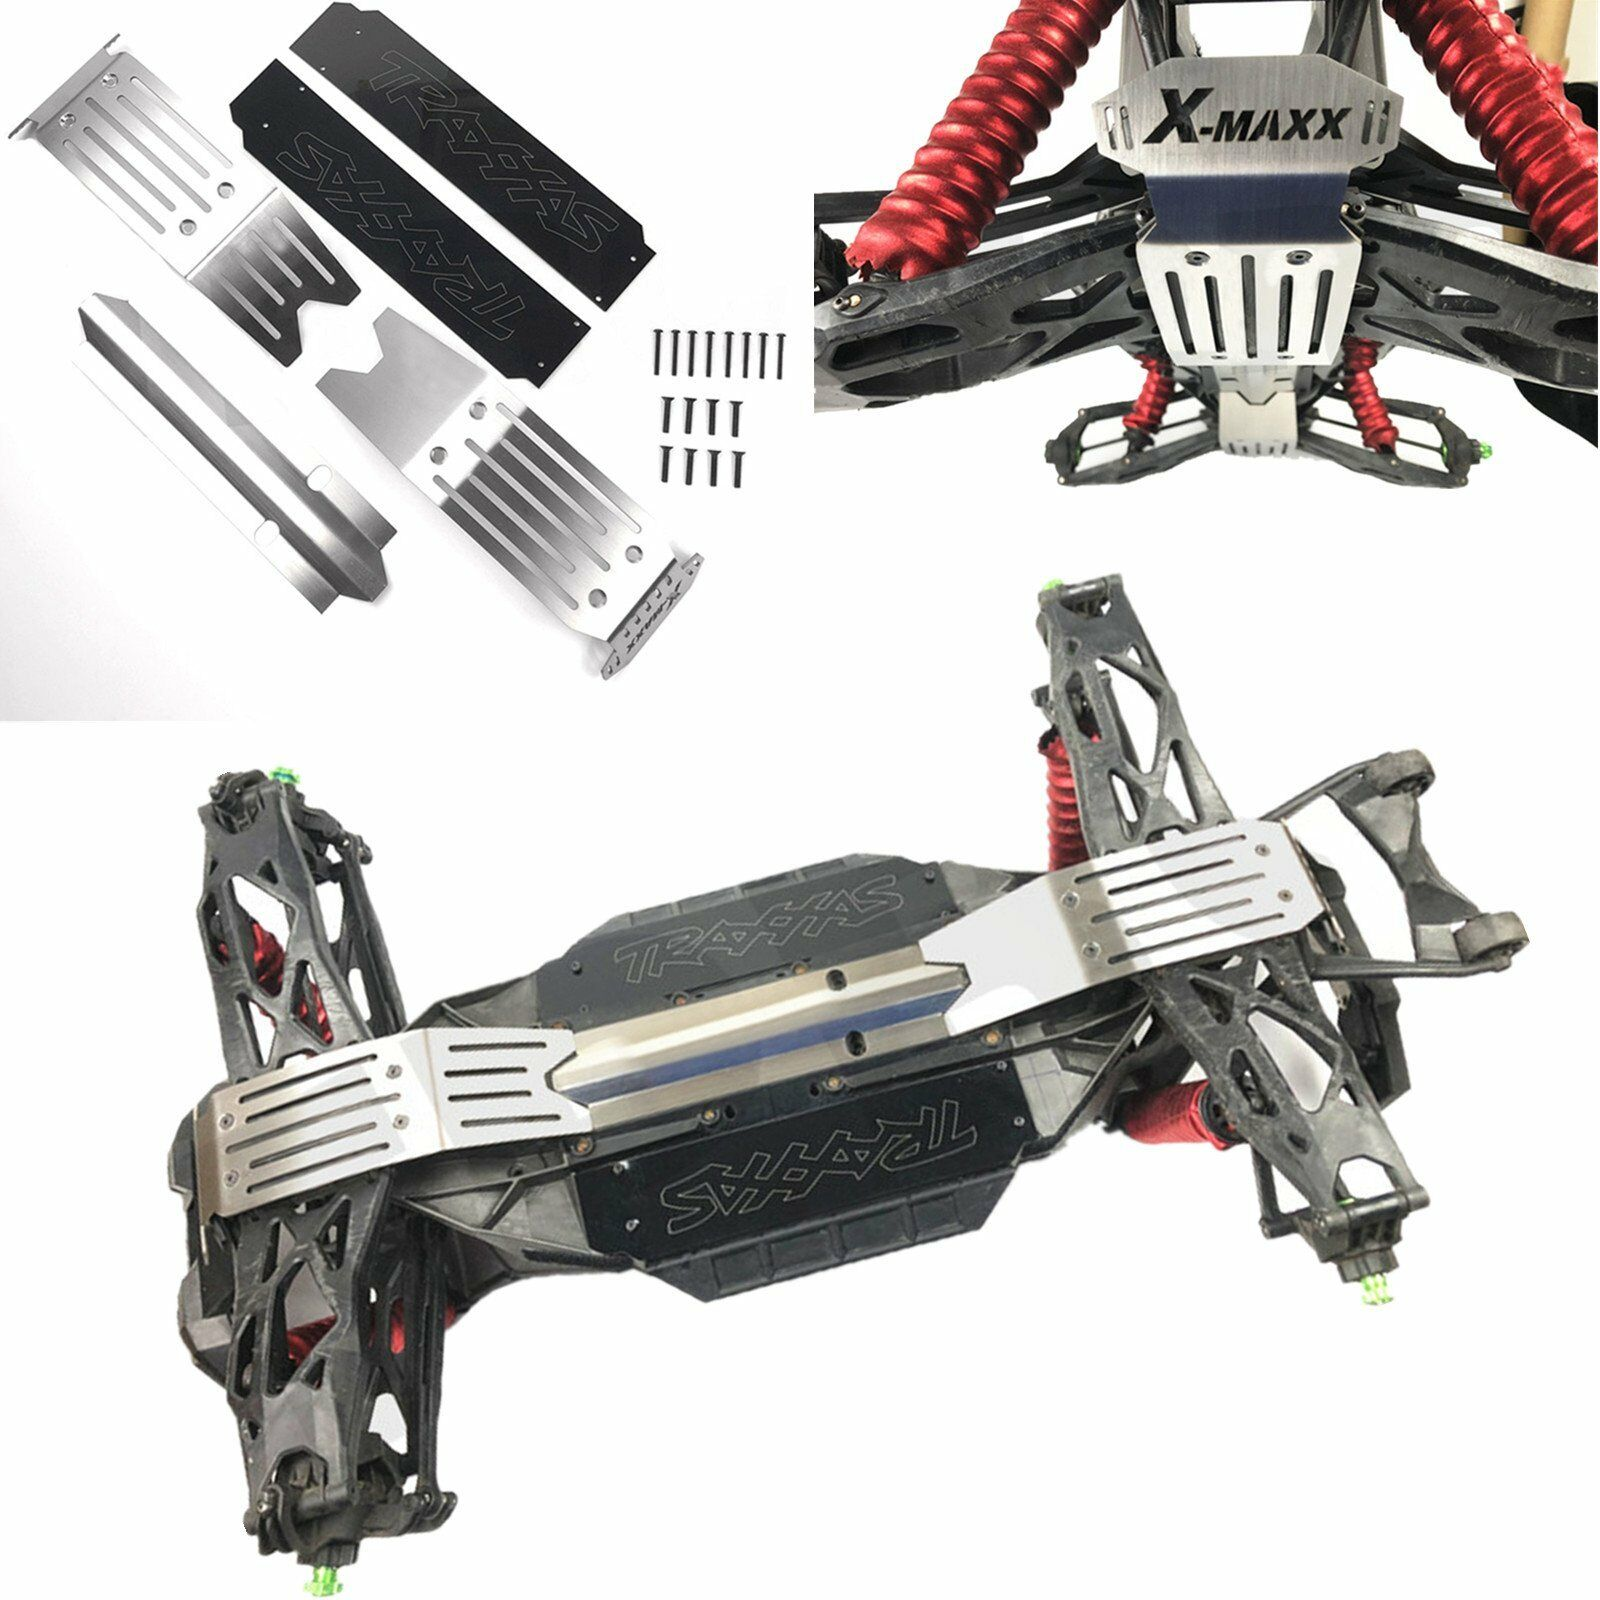 Stainless Steel Chassis Armor Skid Plate Guard for Traxxas X-Maxx XMAXX Crawler